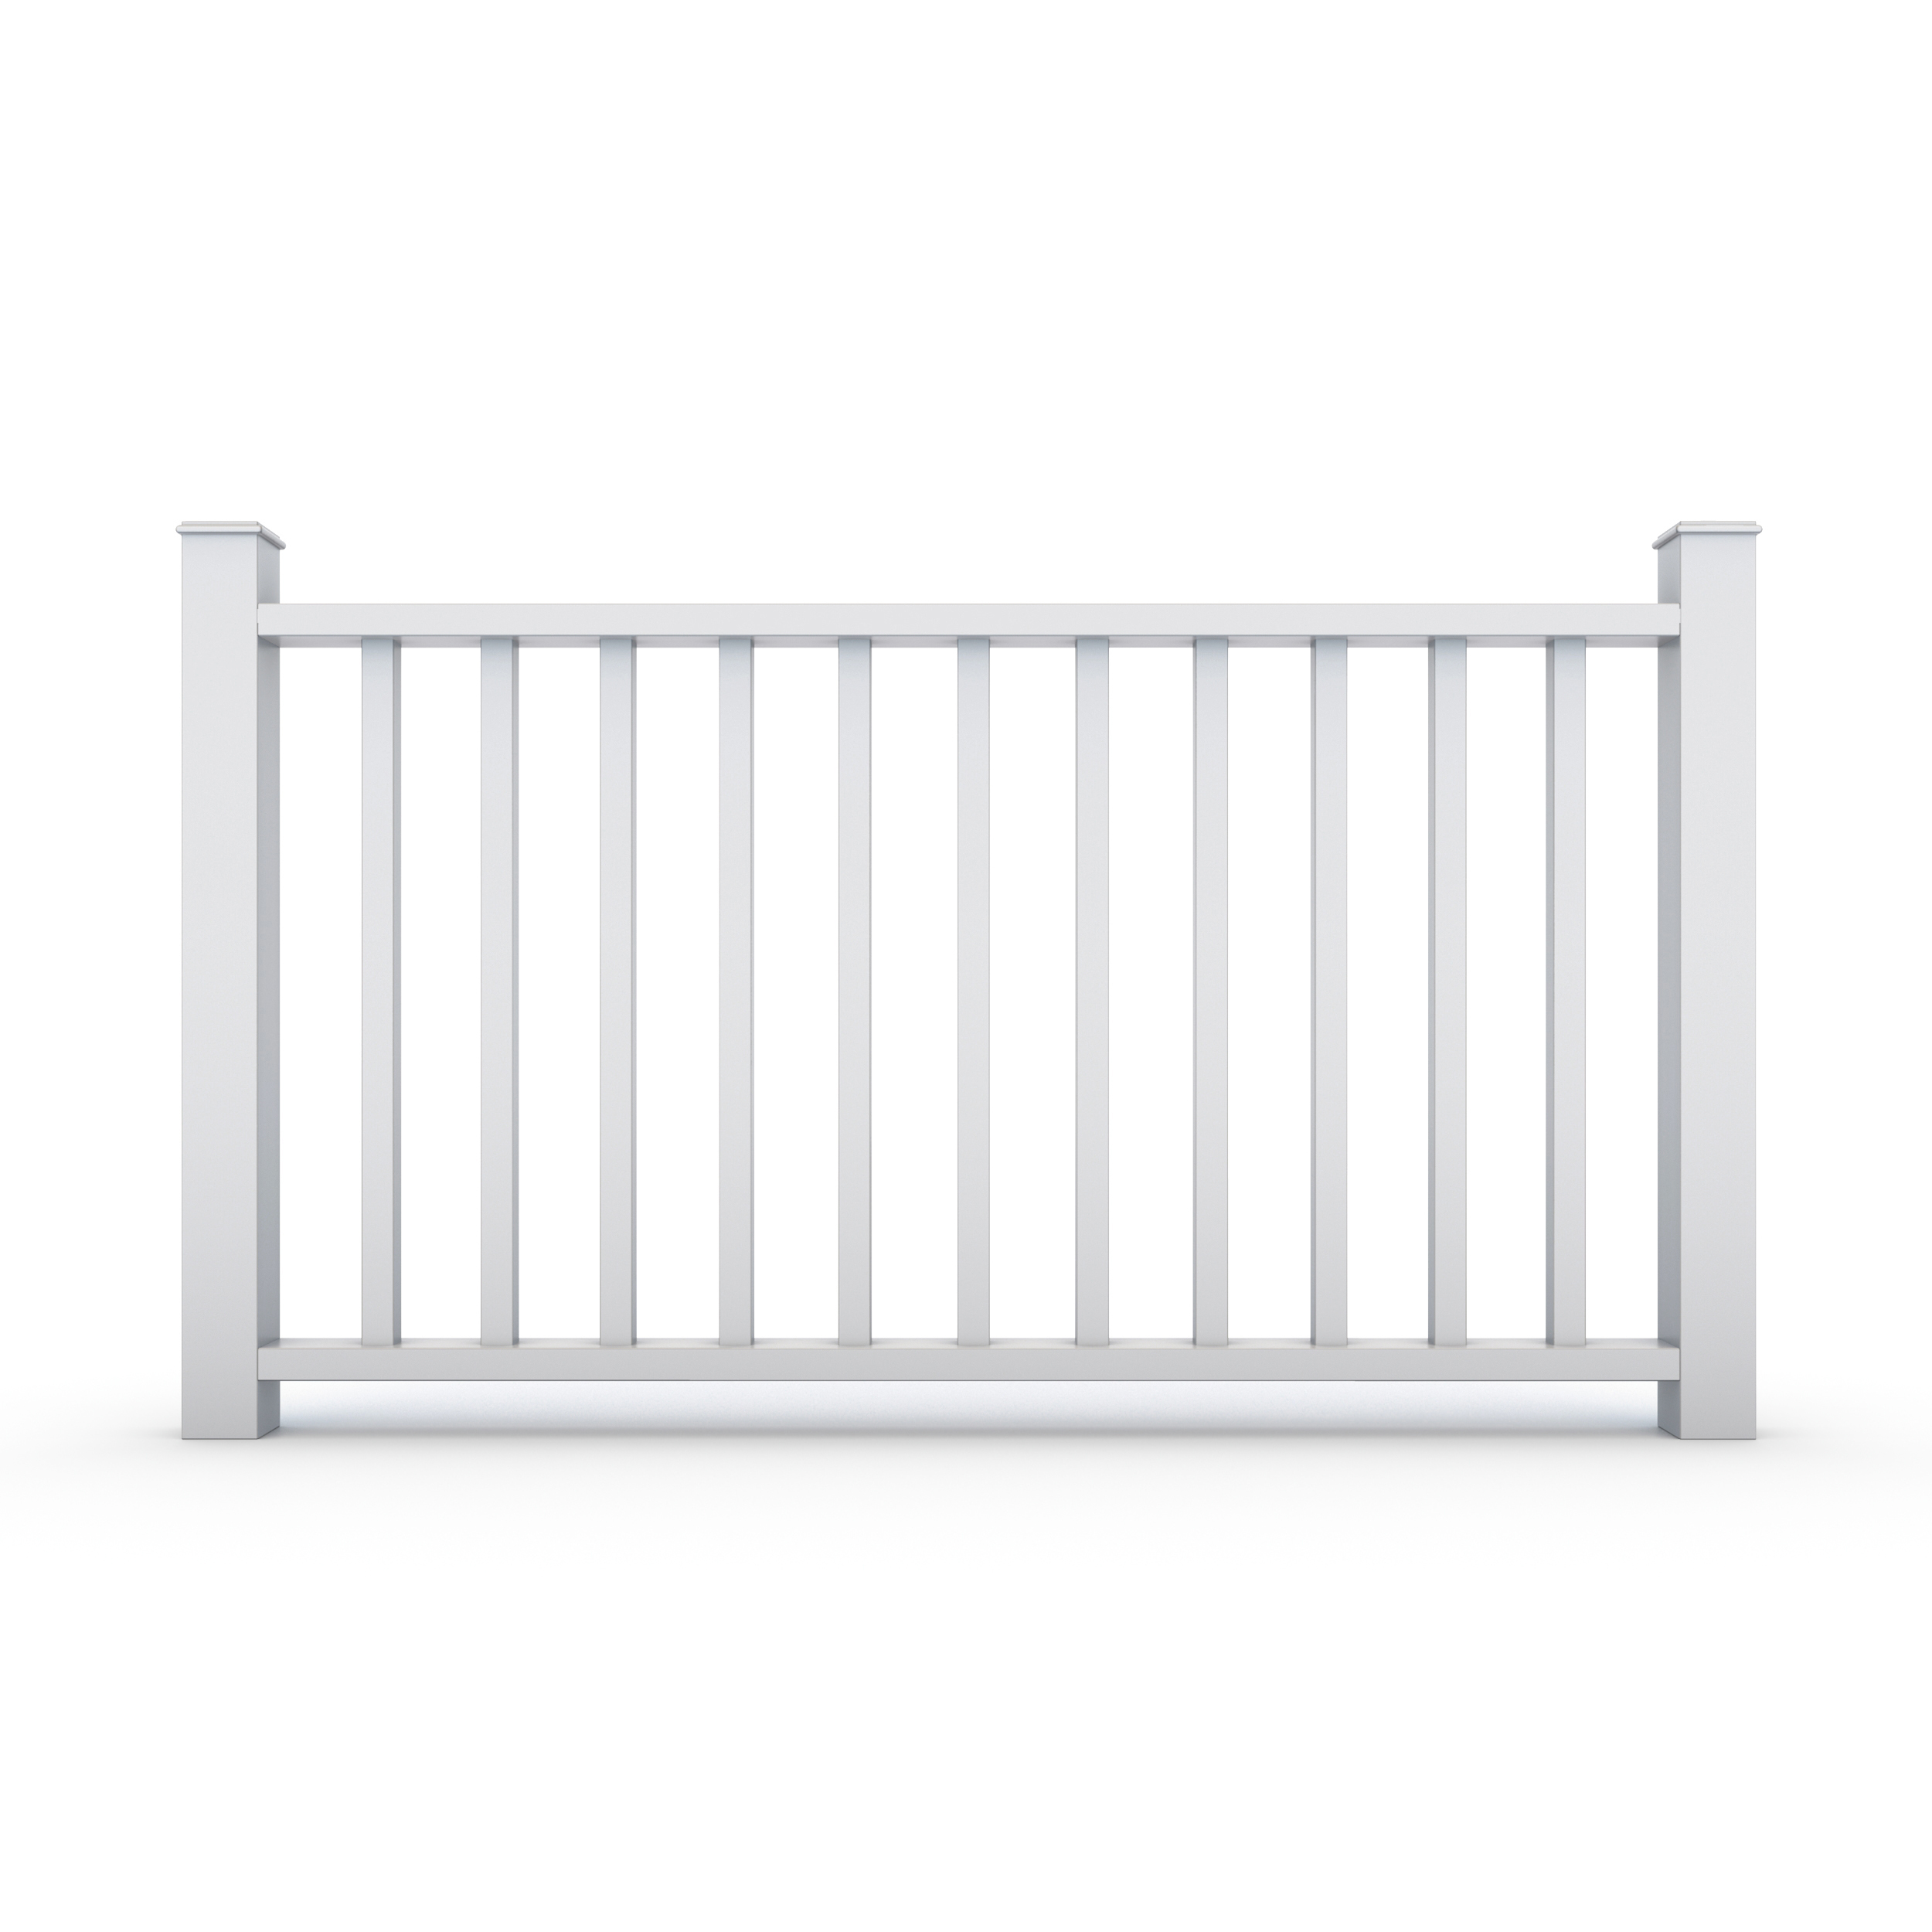 Porch Railings - Southeastern Door and Window - Biloxi MS - (228) 396- shutterstock_118524079  sc 1 st  Southeastern Door and Window & Porch Railing - Southeastern Door and Window - Biloxi MS - (228) 396 ...